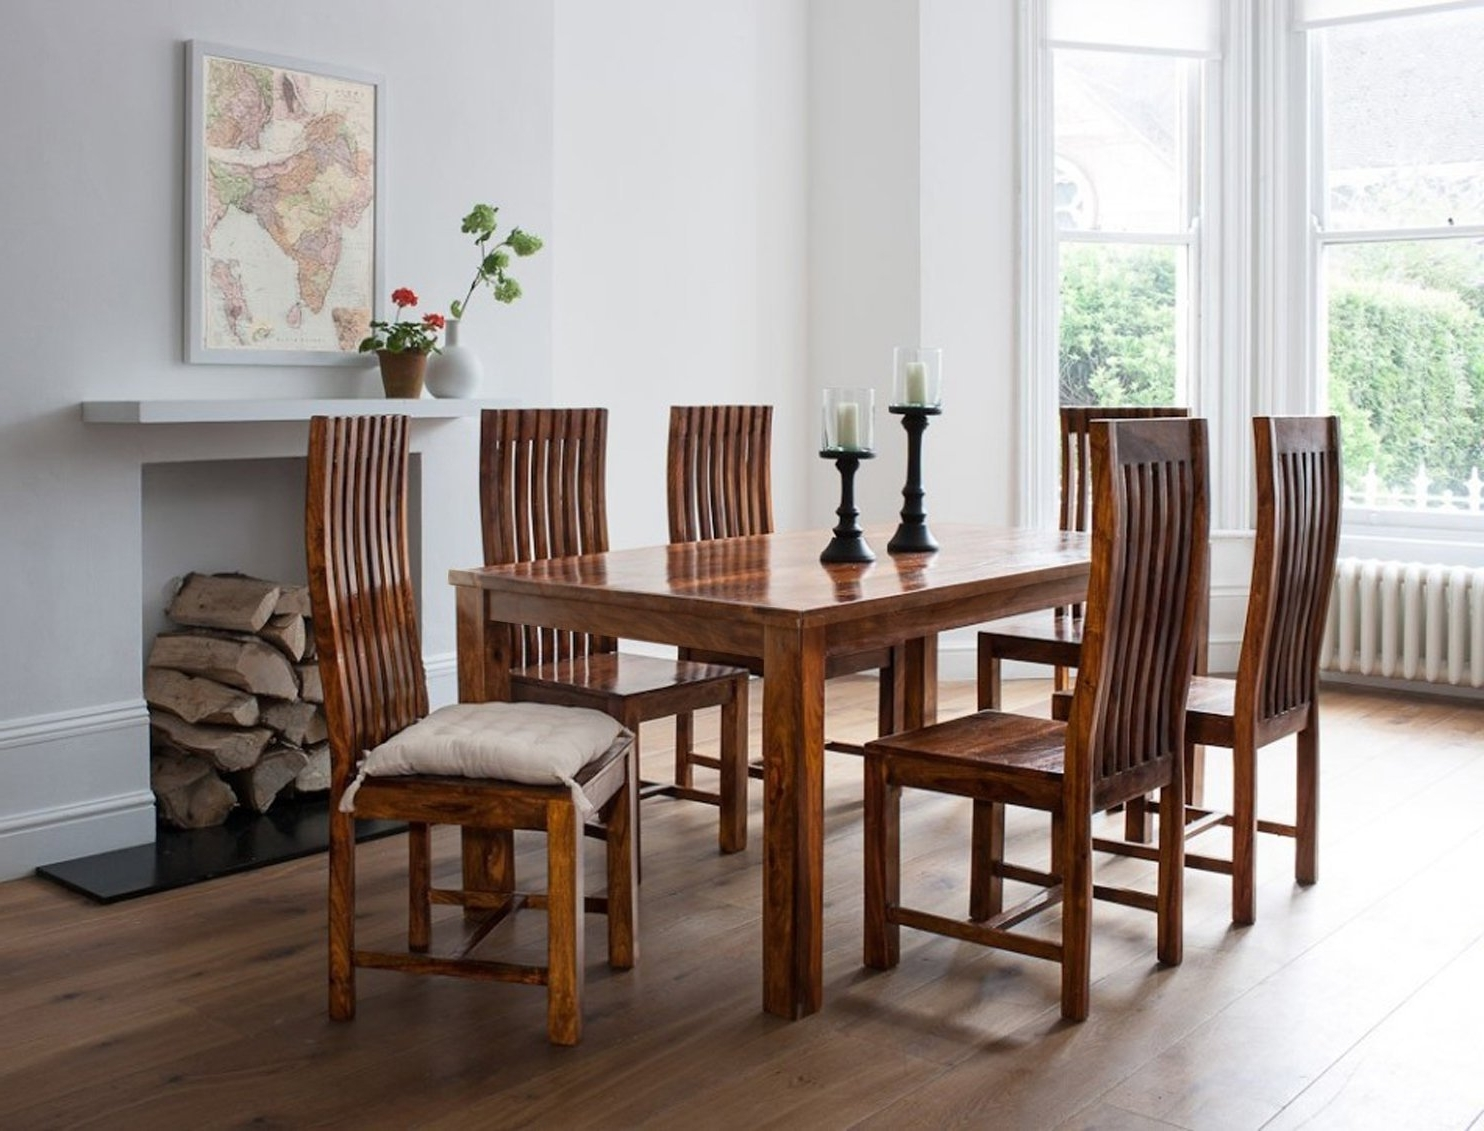 Six Seater Dining Tables With Regard To Newest Lifeestyle Handcrafted Sheesham Wood 6 Seater Dining Set (Honey (View 22 of 25)